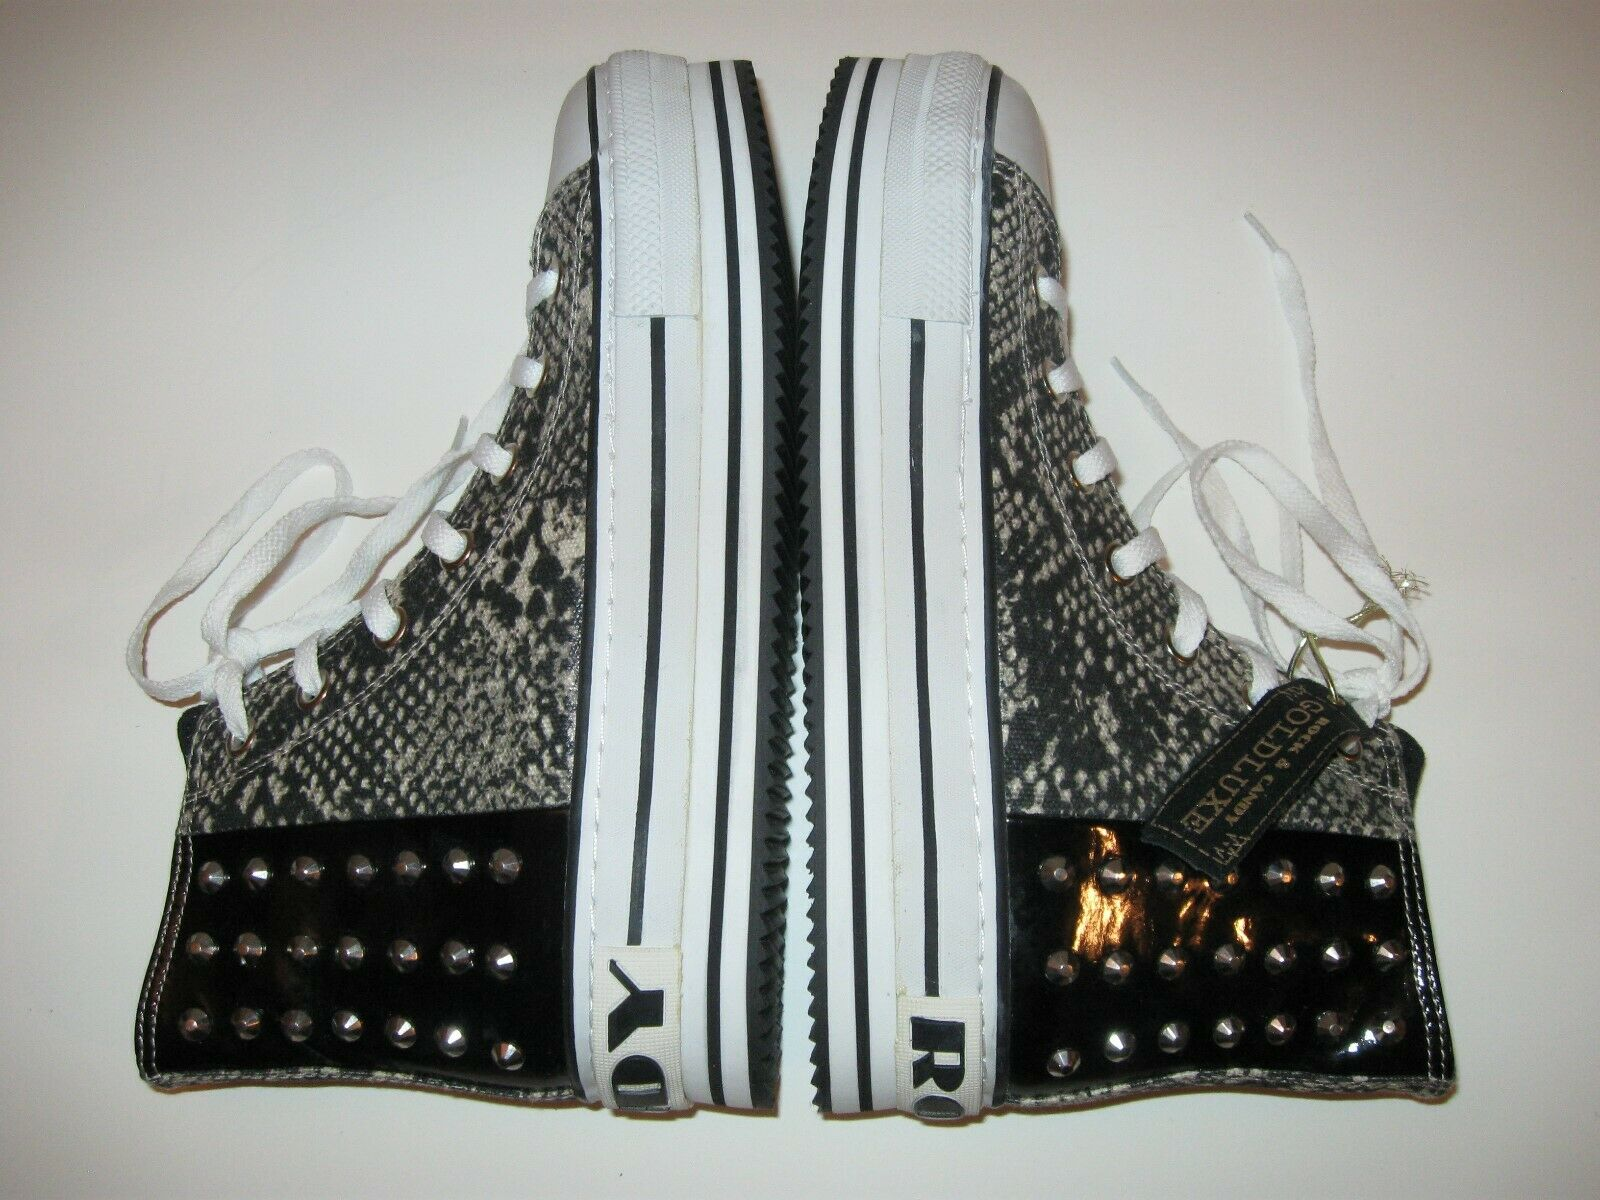 Rock Candy goldluxe Snake Skin Print Studded Platform Sneakers Sz 10 Tennis shoes